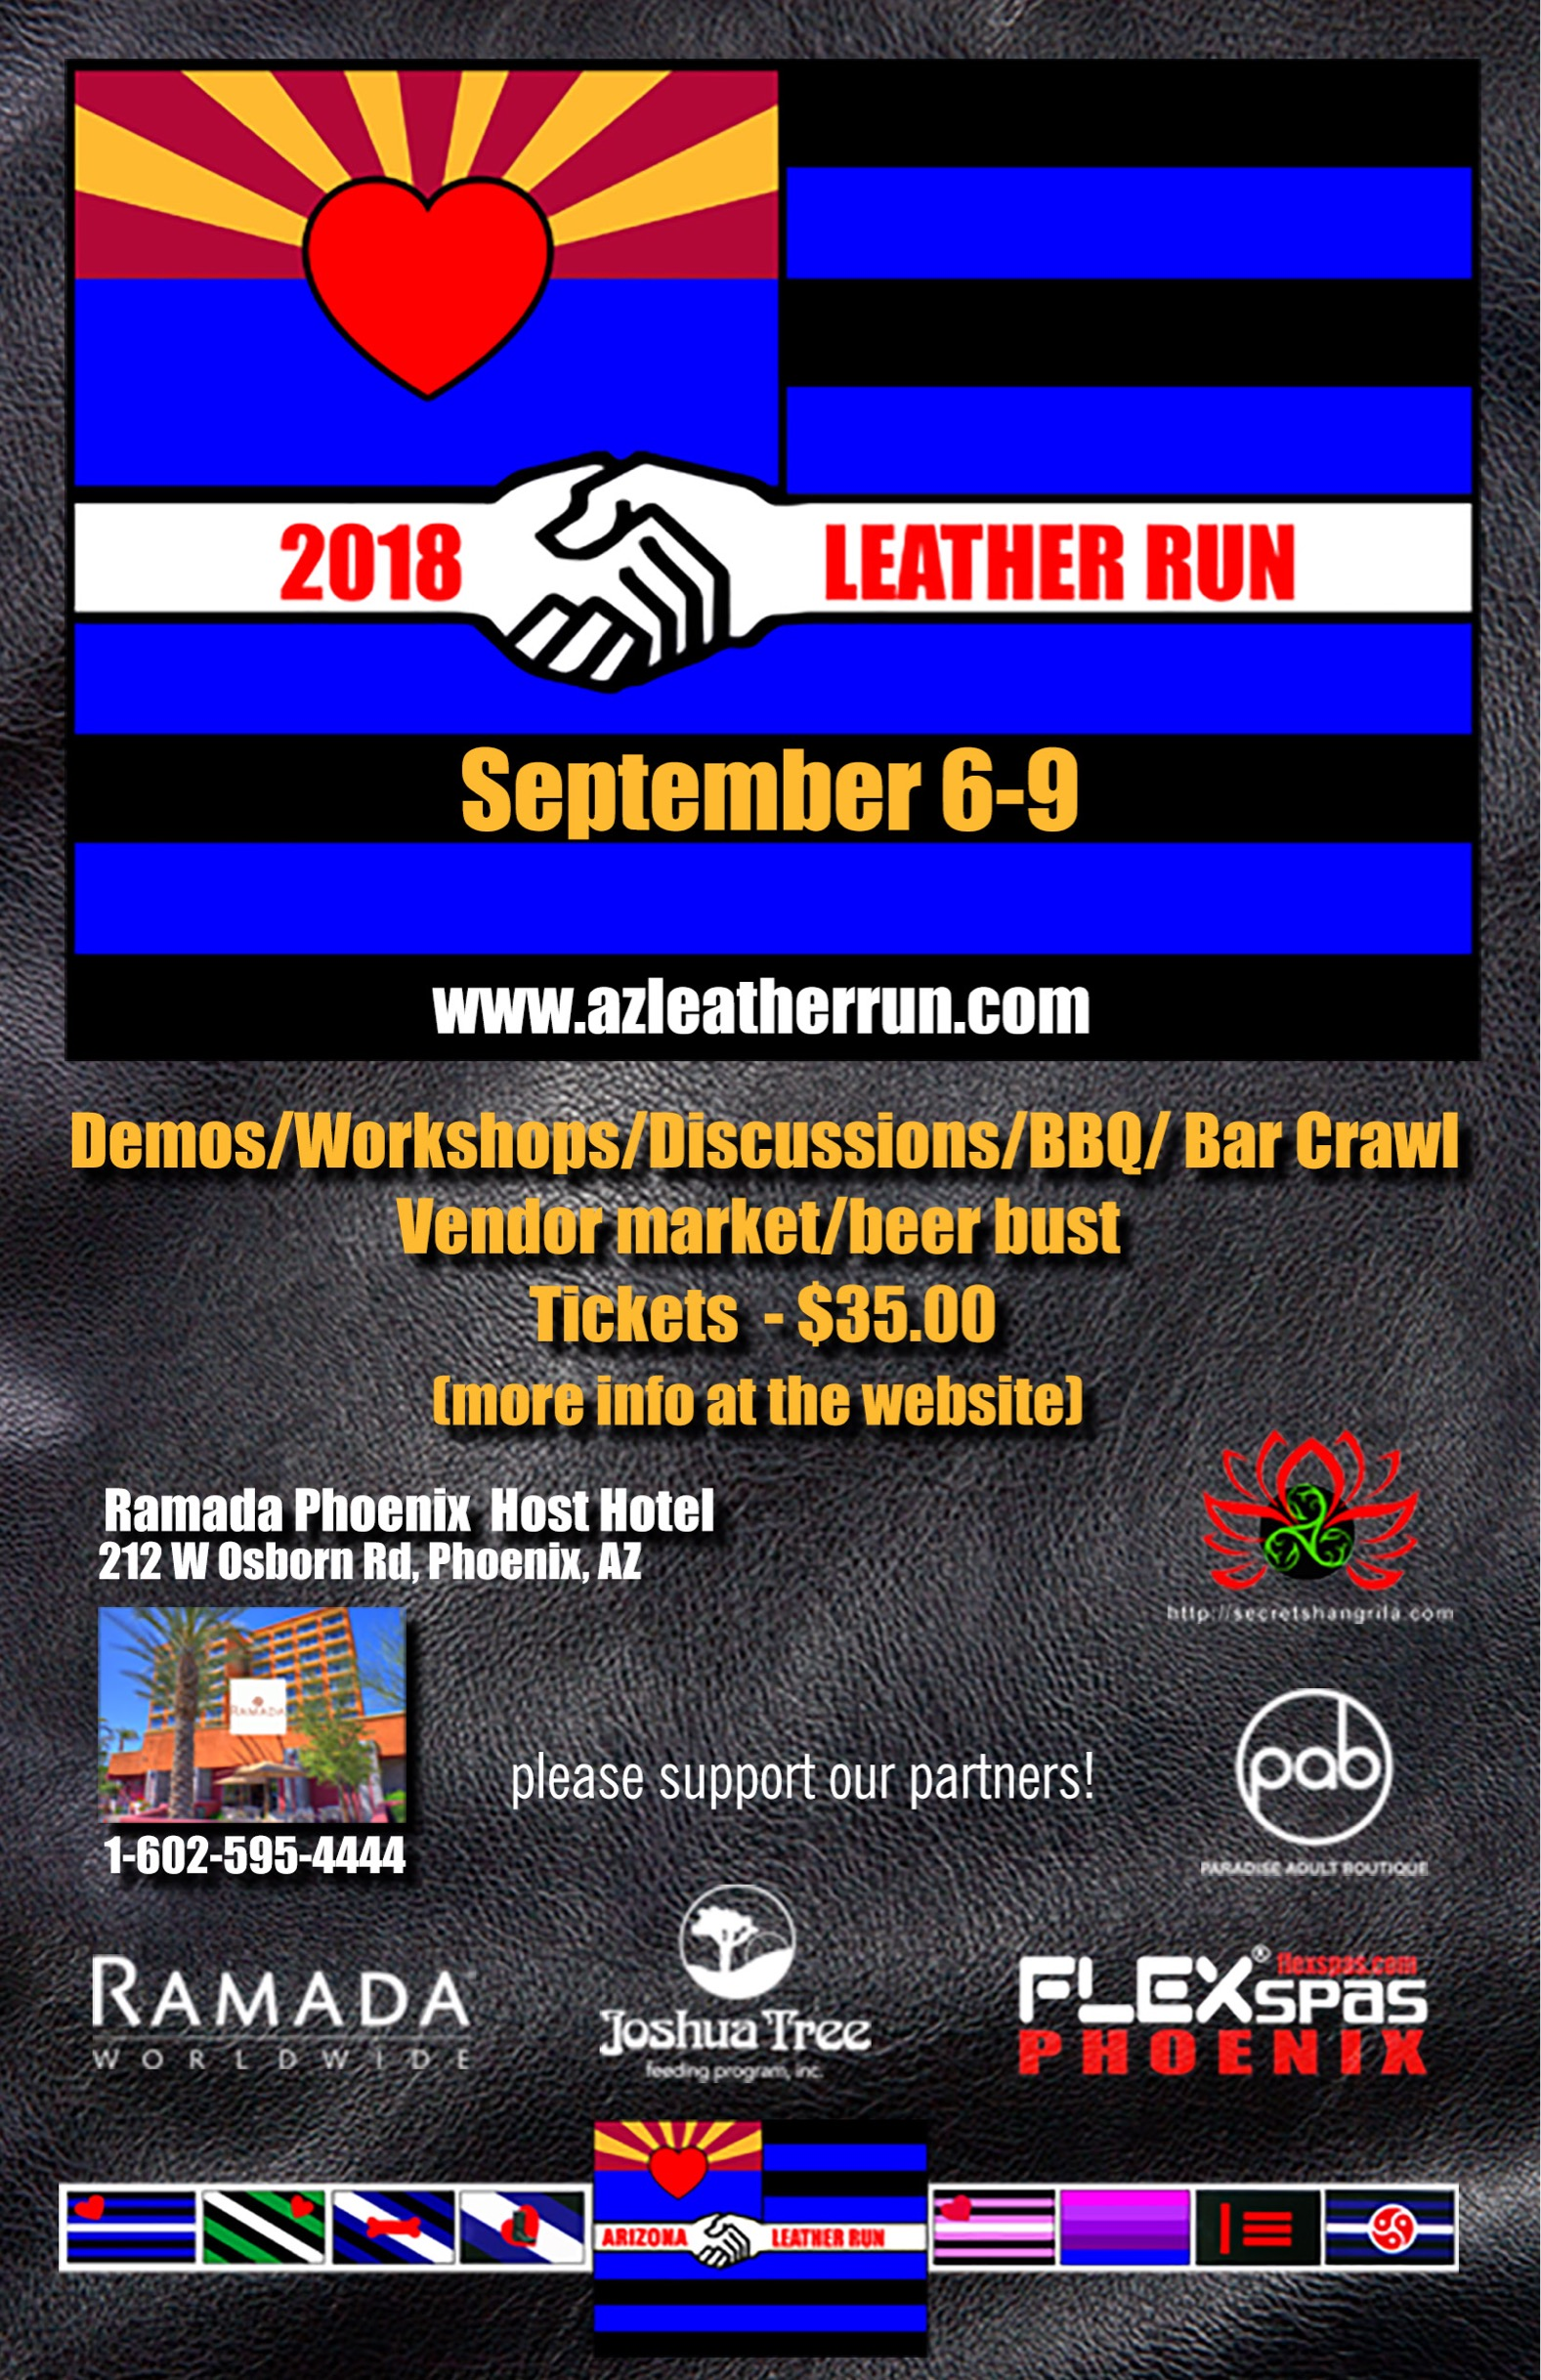 Must be an badge holding attendee of the AZ Leather Run to attend!